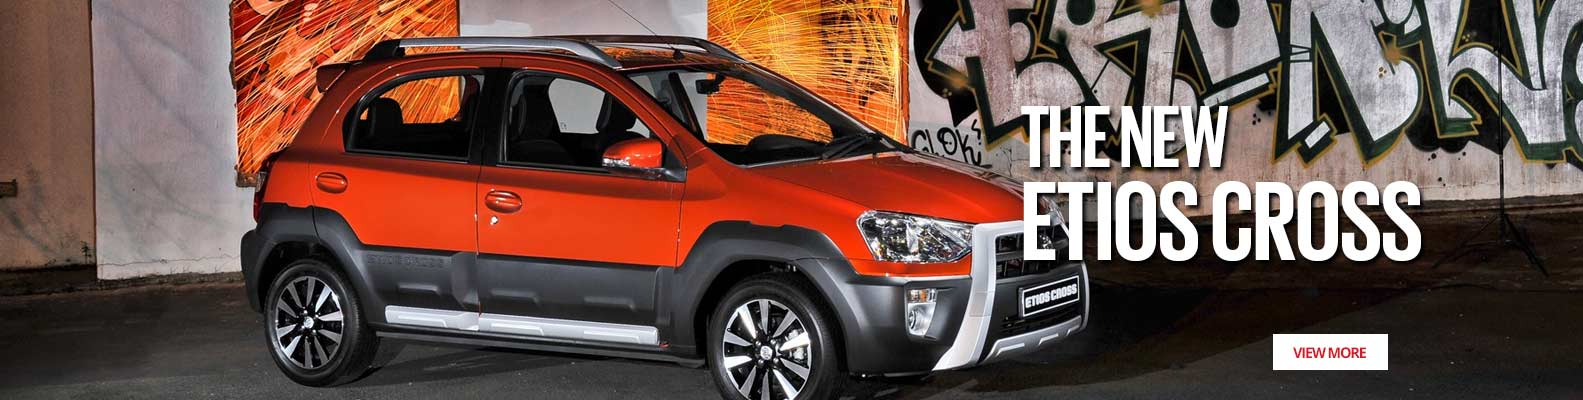 The New Etios Cross